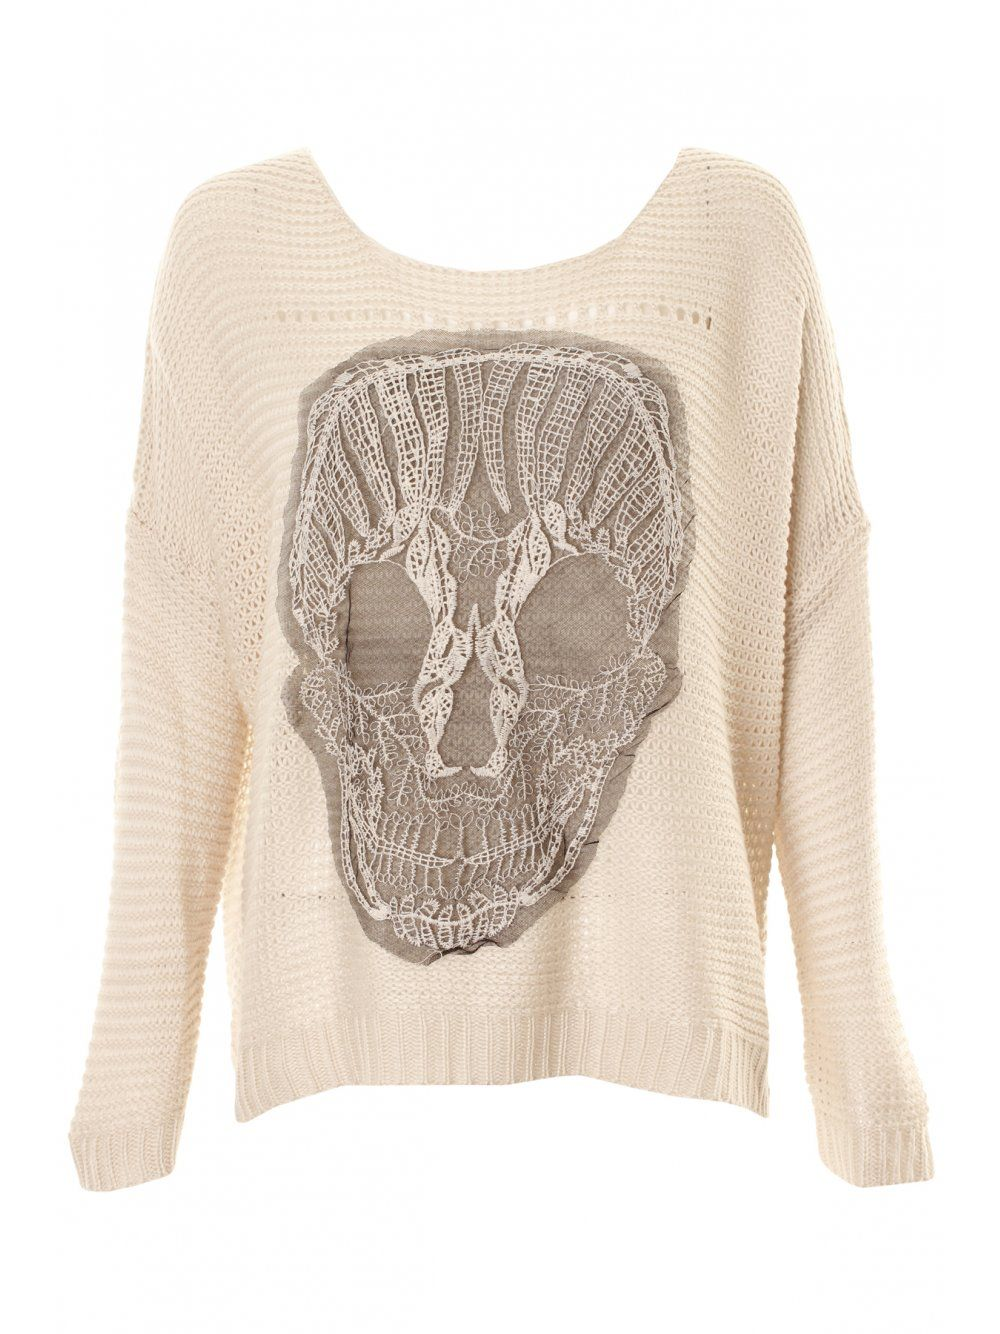 0550c286a2614 Cream Oversized Skull Jumper